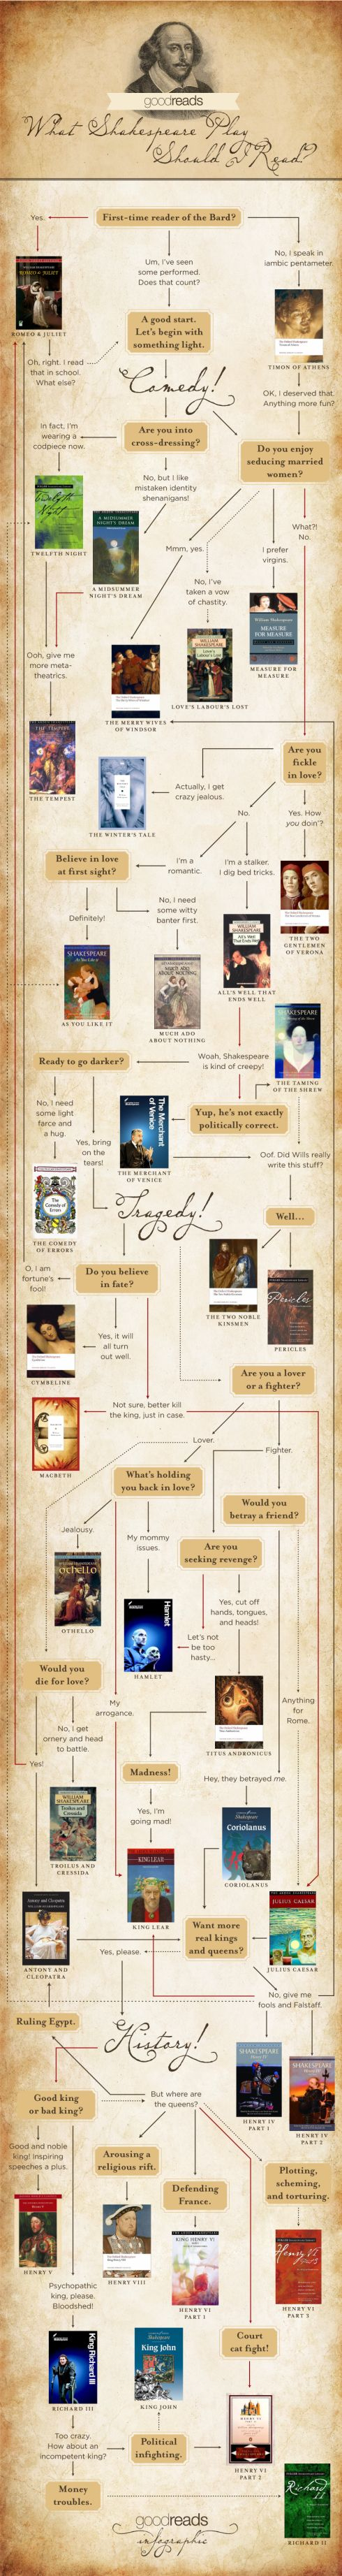 What Shakespeare play should I read? #infographic